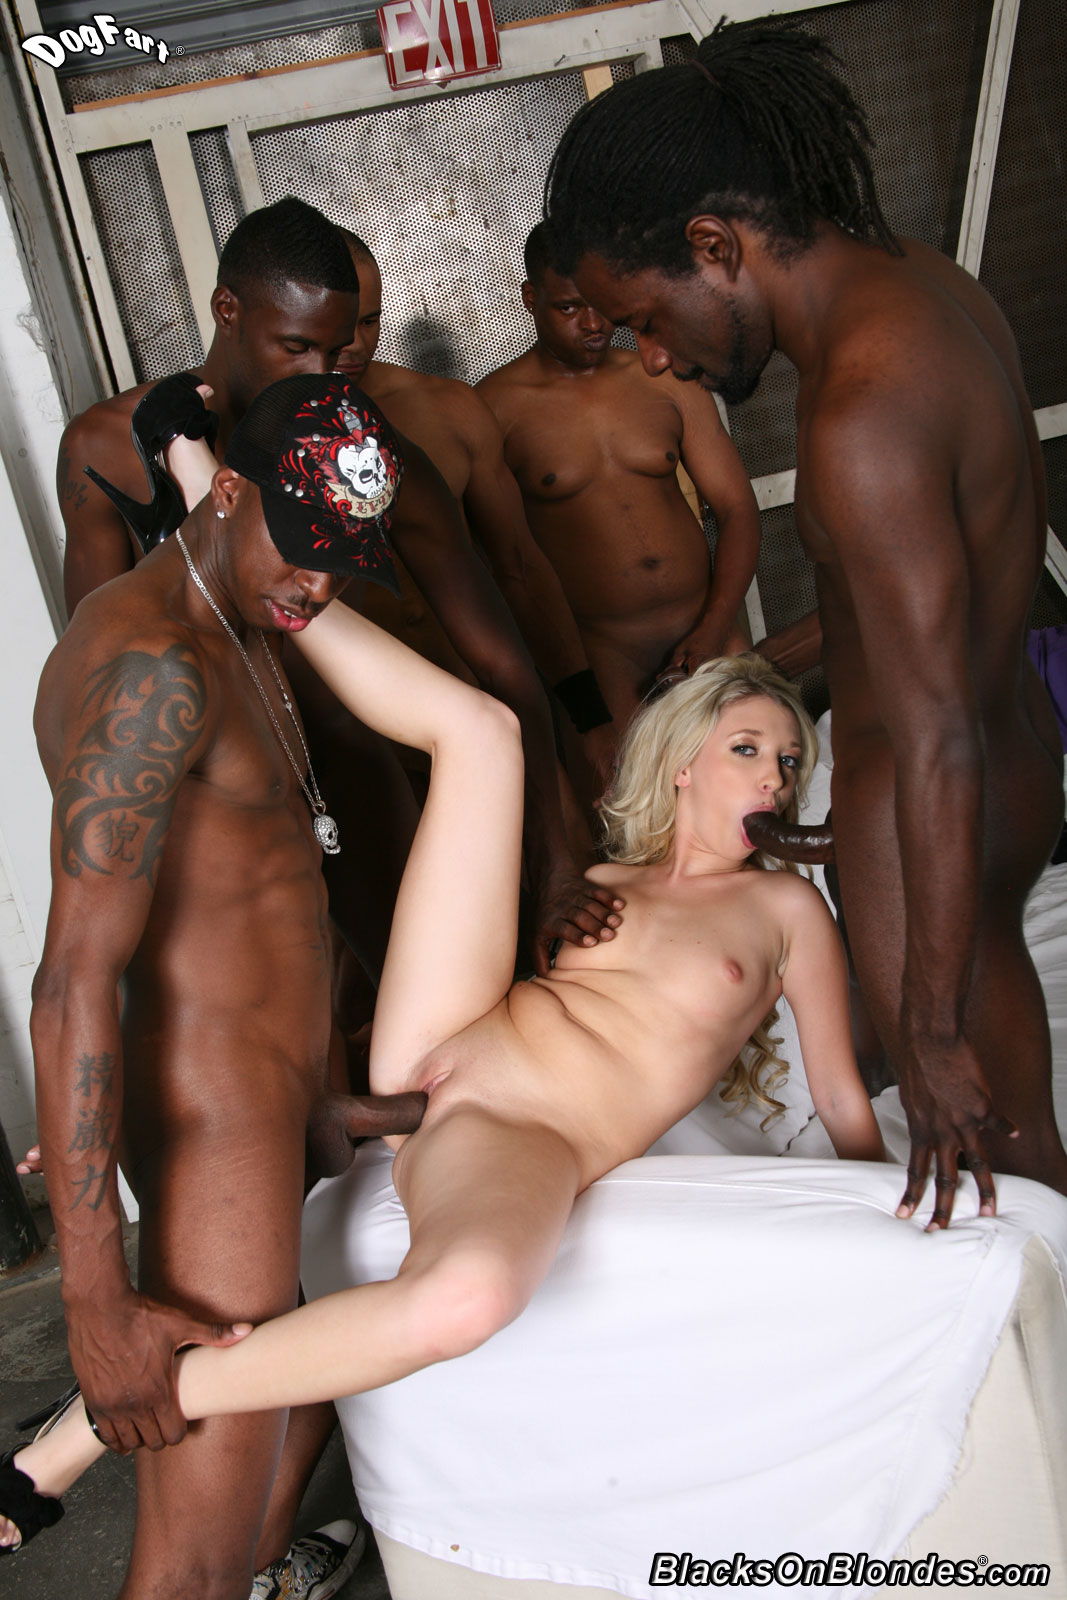 My last gangbang in high heels louboutin and leather dress - 3 part 6